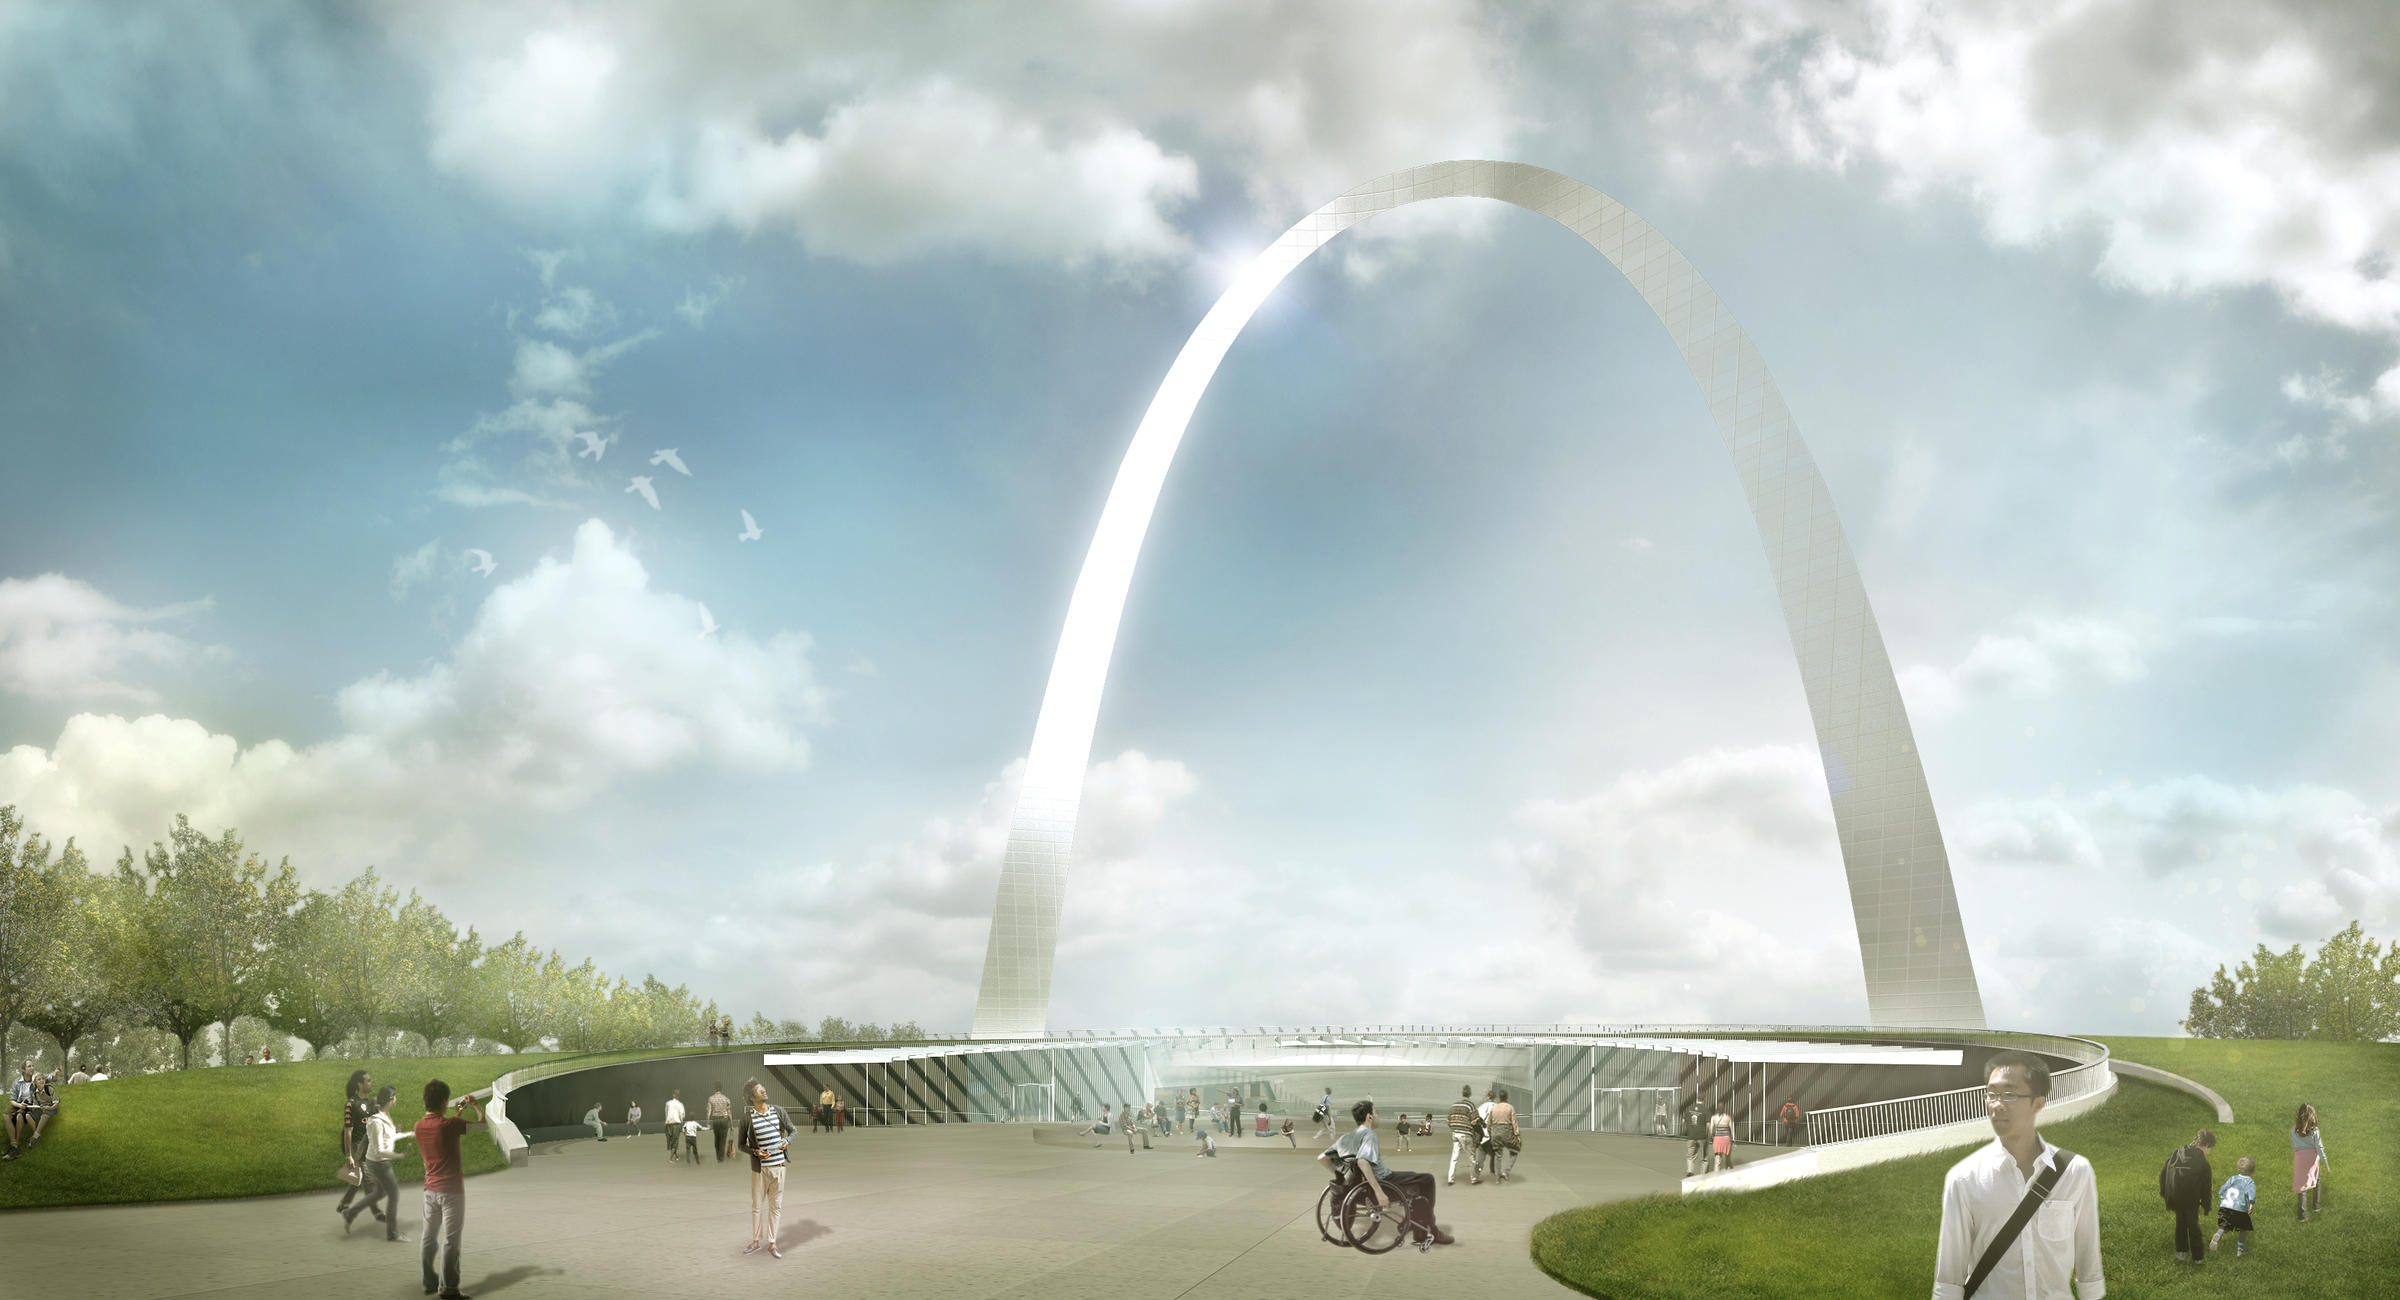 upcycled arch design details from monument s past get new life in several design elements from the original arch grounds are being incorporated in interesting ways in the renovation plans